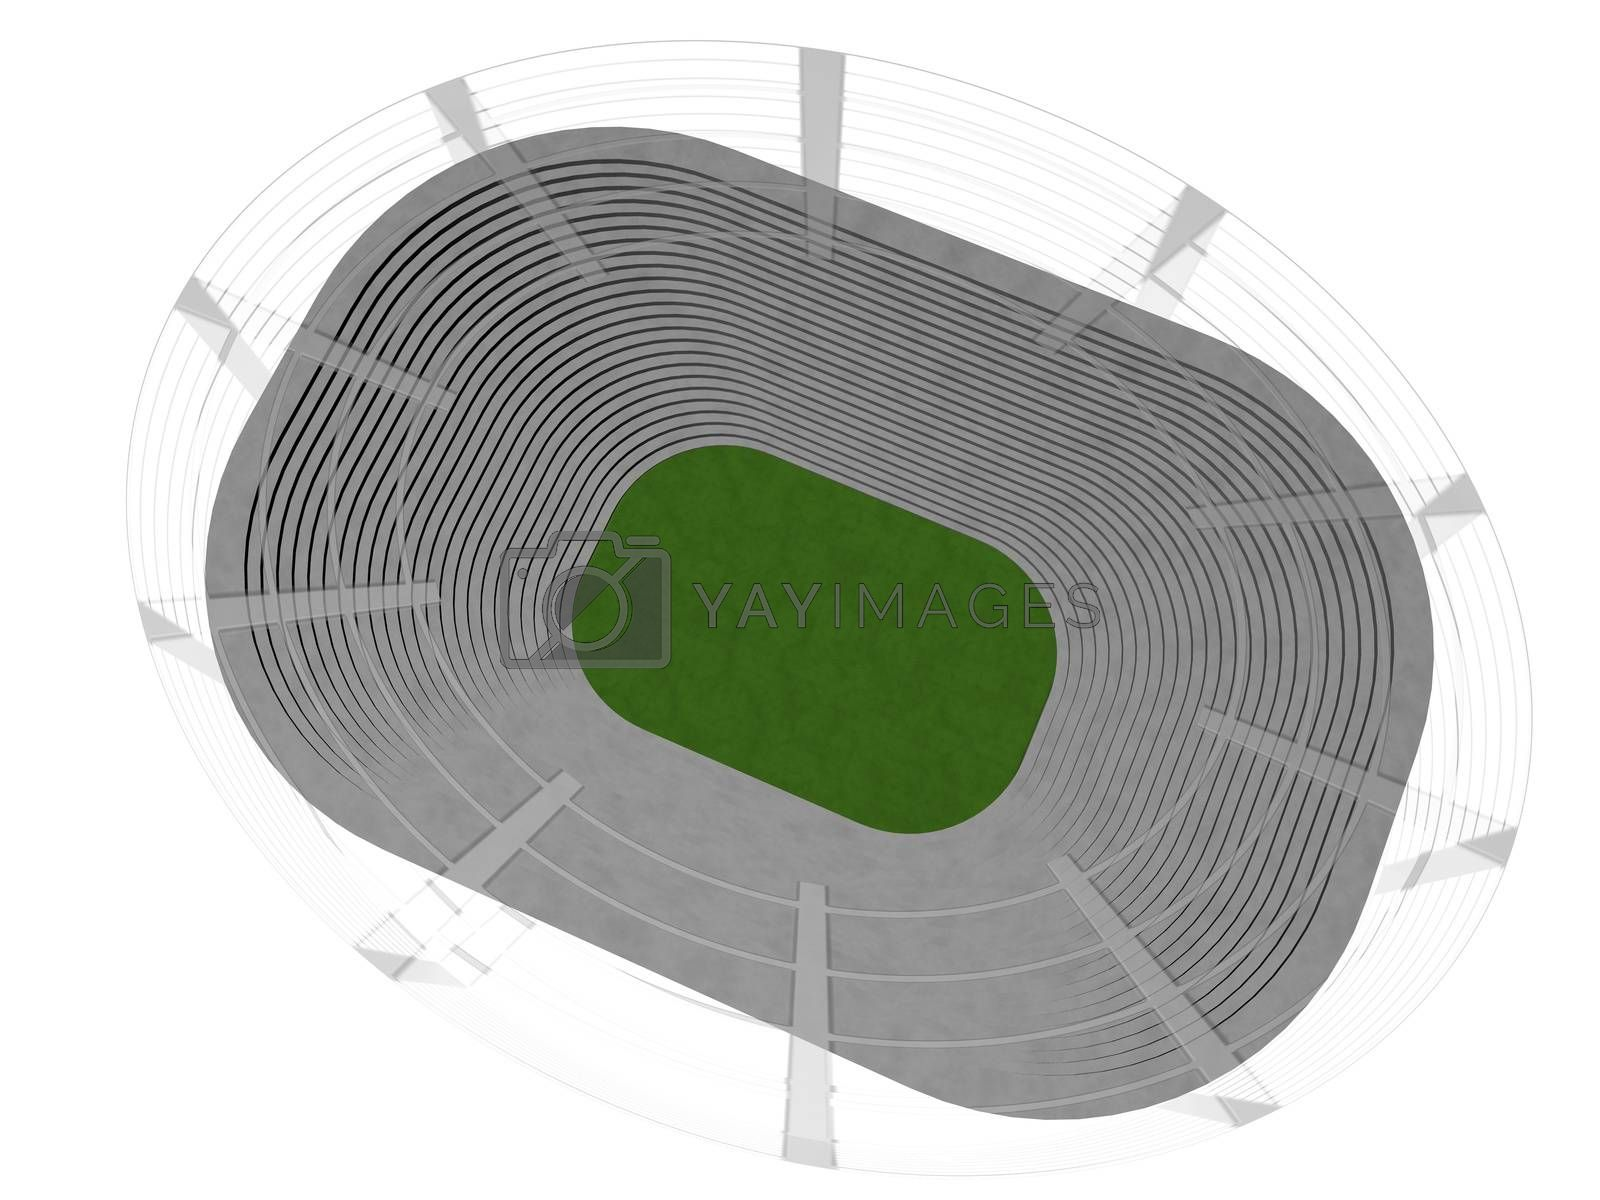 Royalty free image of Stadium by Koufax73